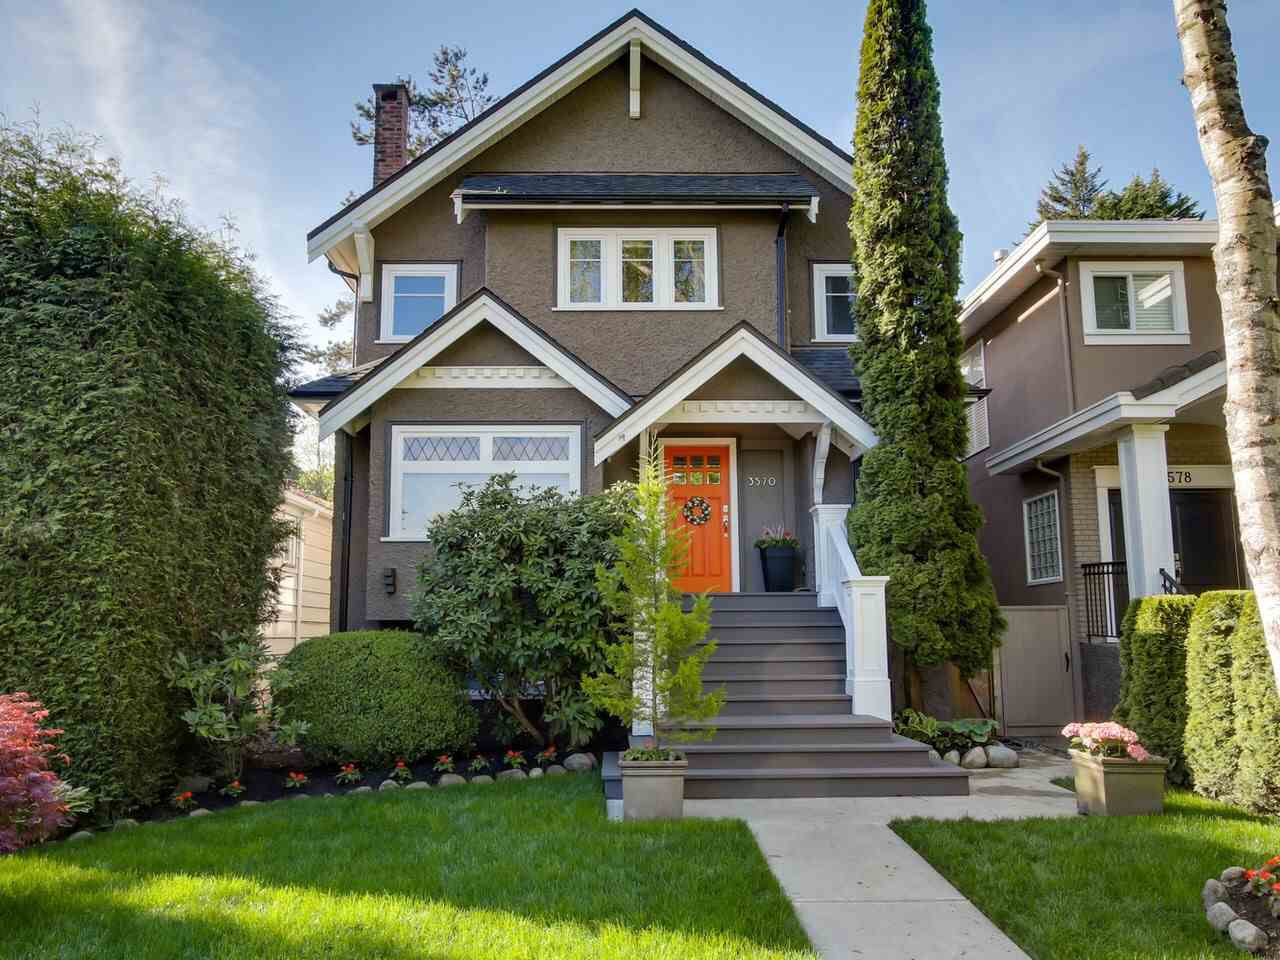 Main Photo: 3570 W 21ST AVENUE in Vancouver: Dunbar House for sale (Vancouver West)  : MLS®# R2059869